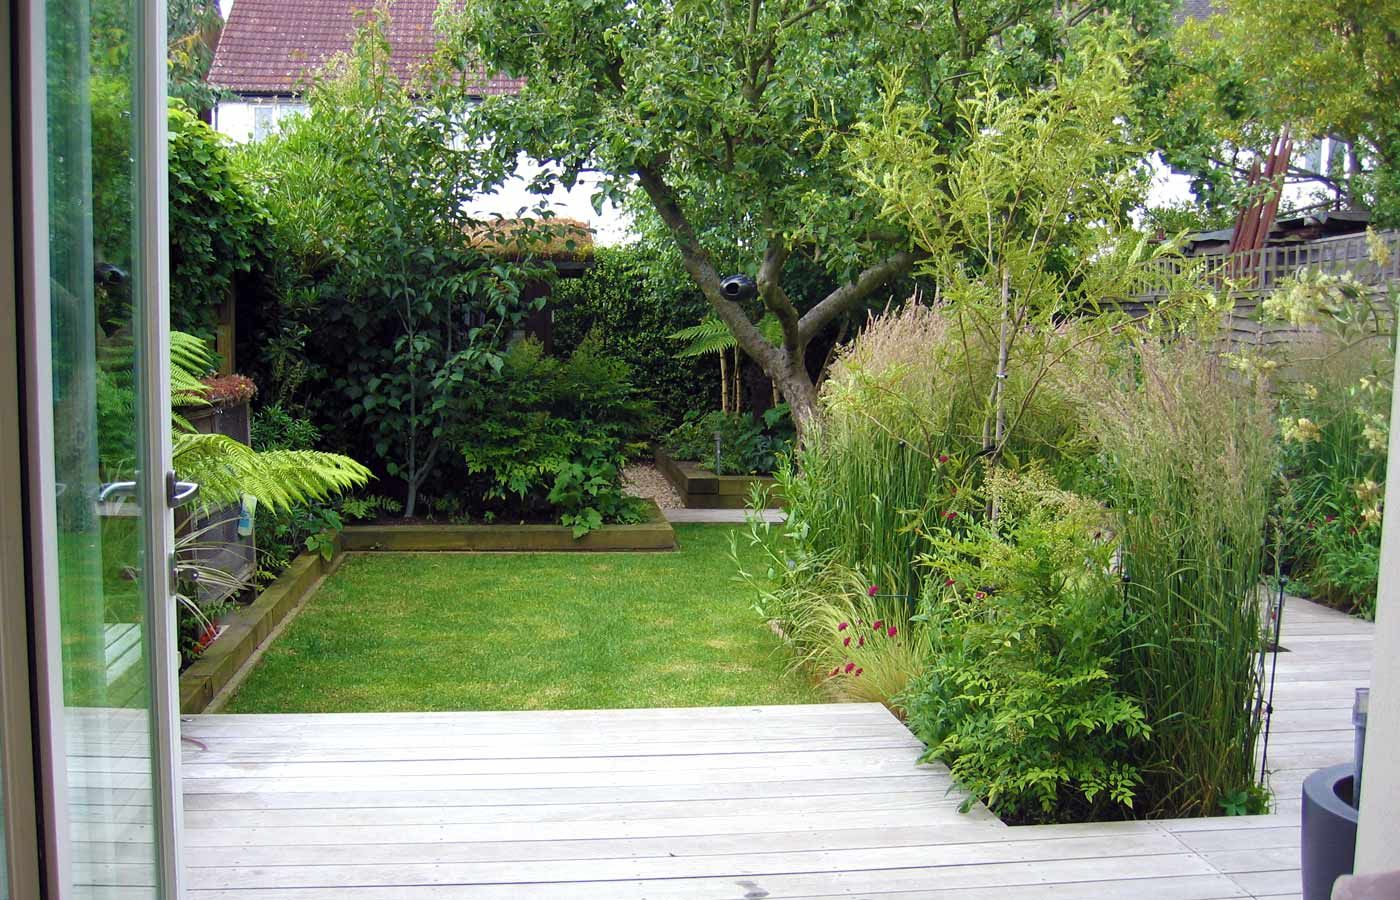 Small trees for lawn lawn and decing in small north london garden outdoor things pinterest - Garden ideas london ...